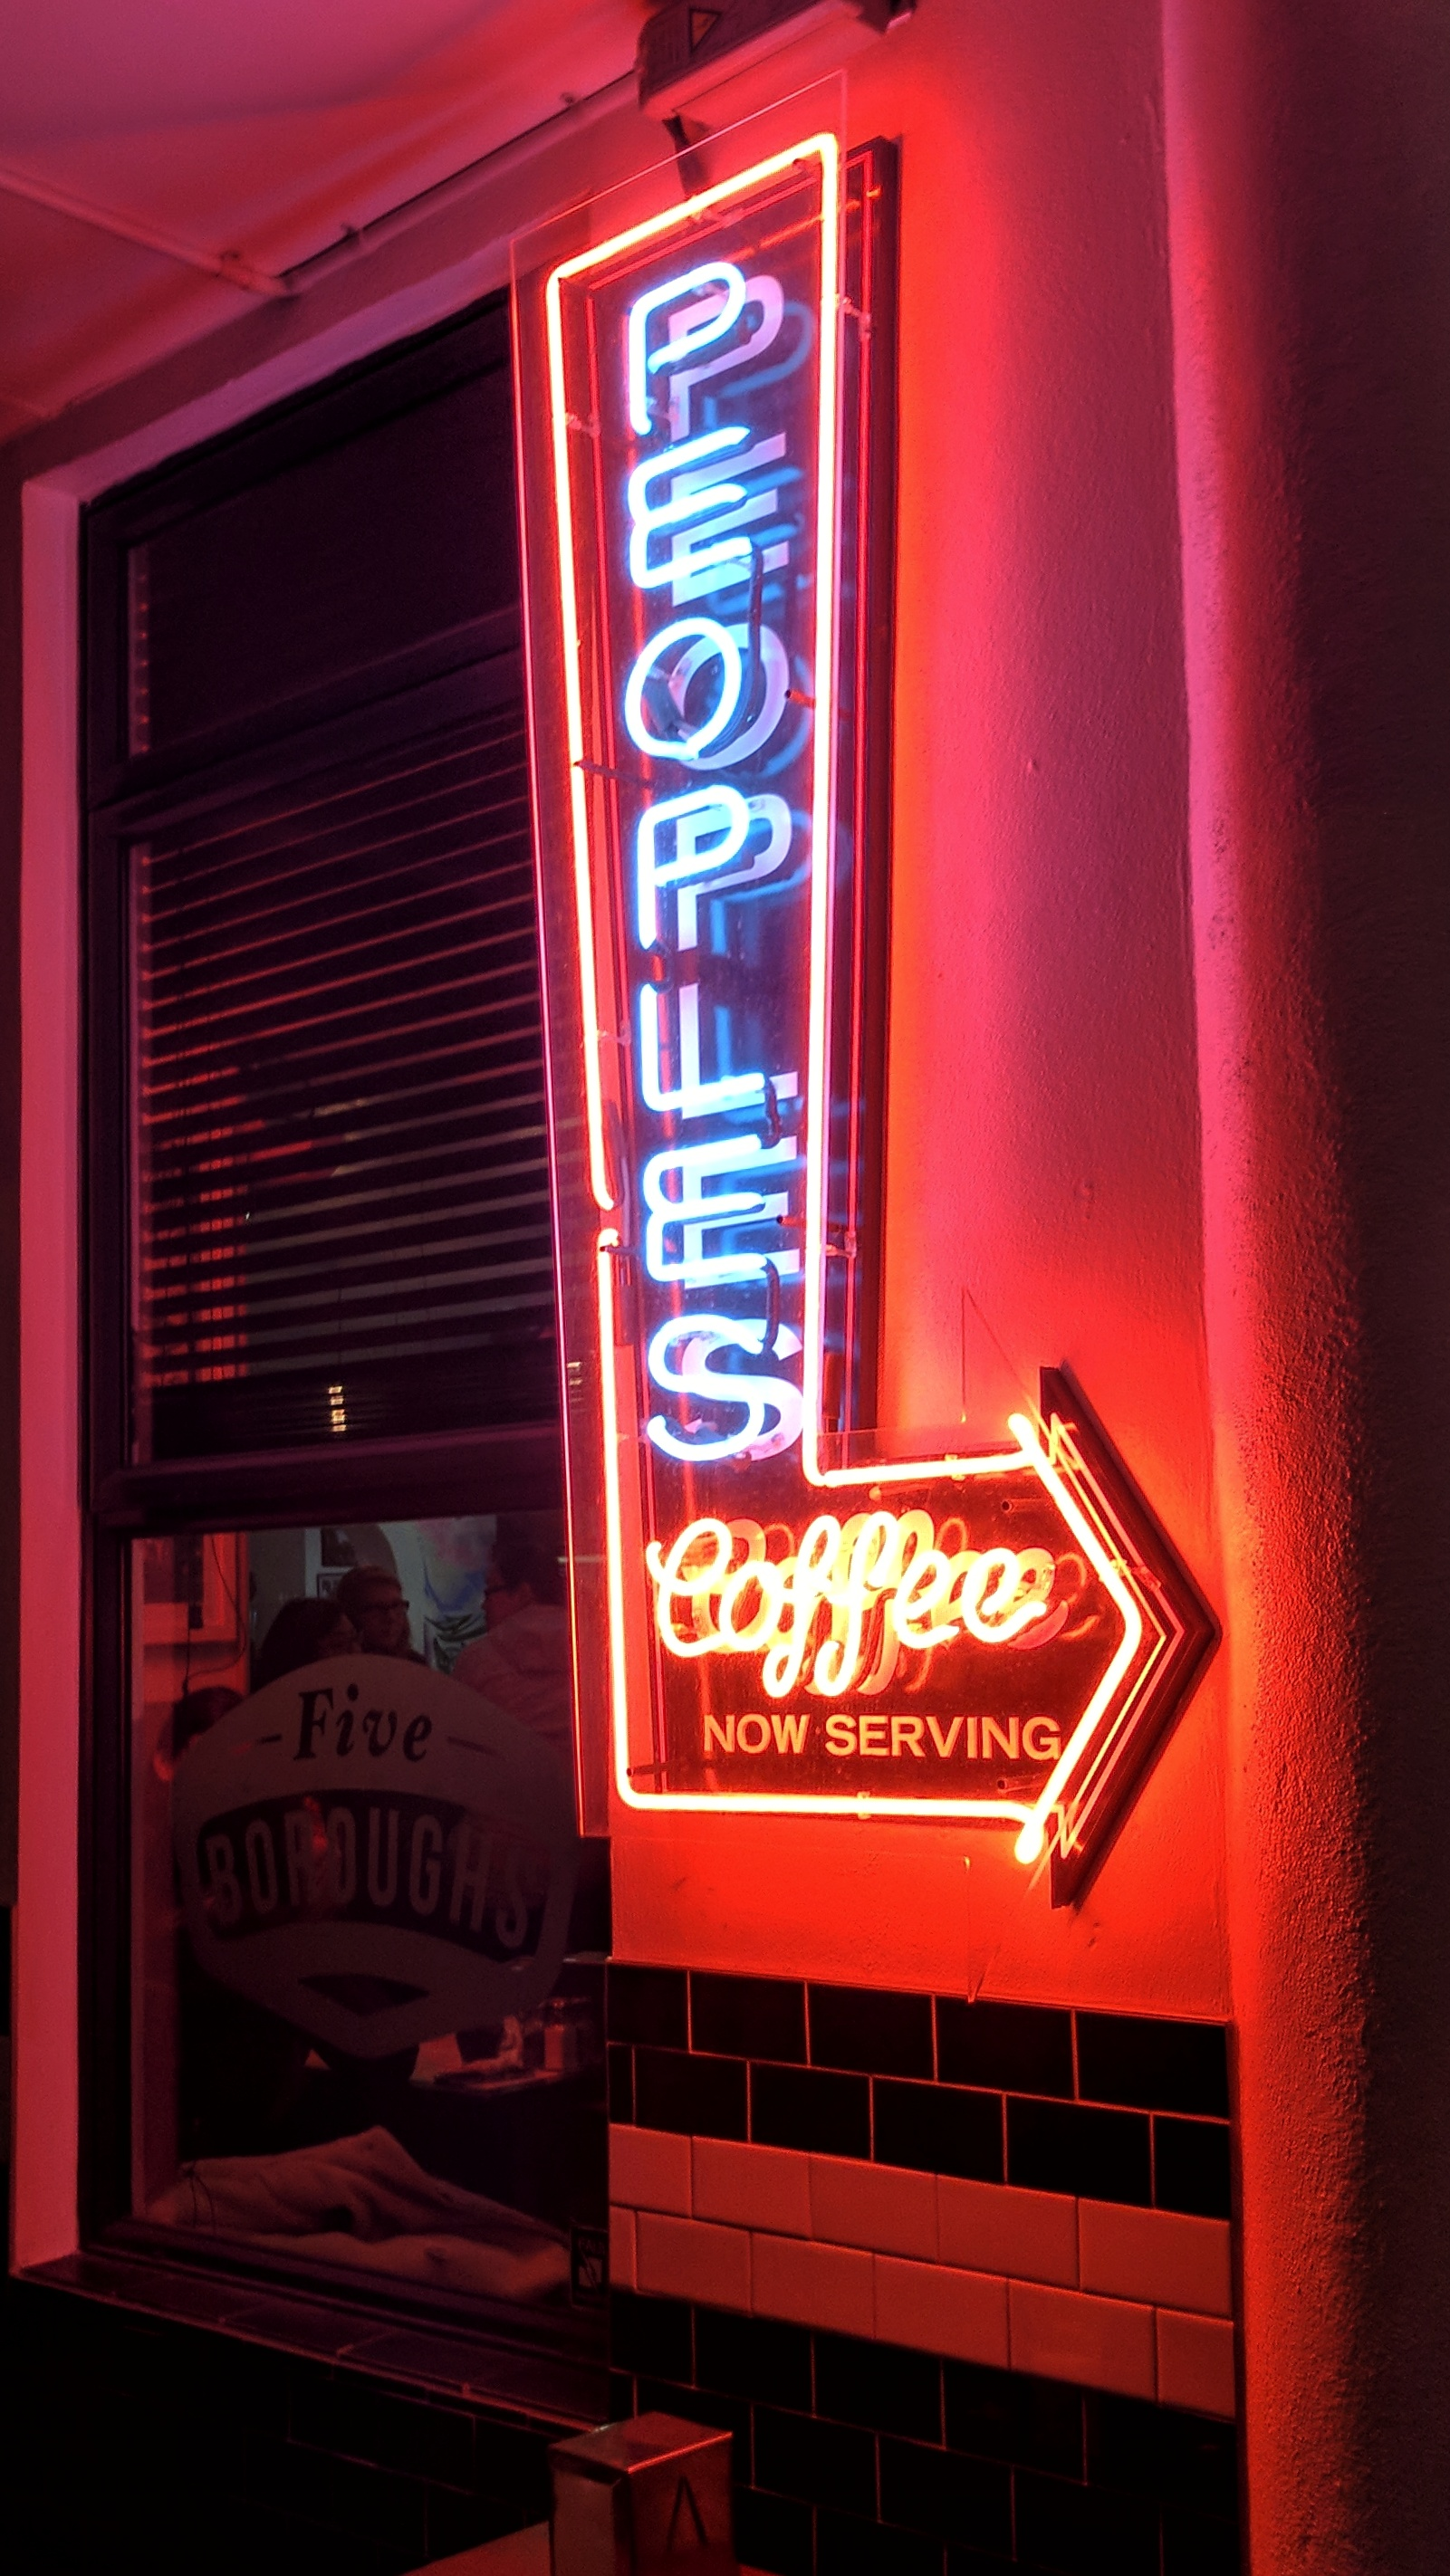 'Peoples Coffee now serving' neon sign